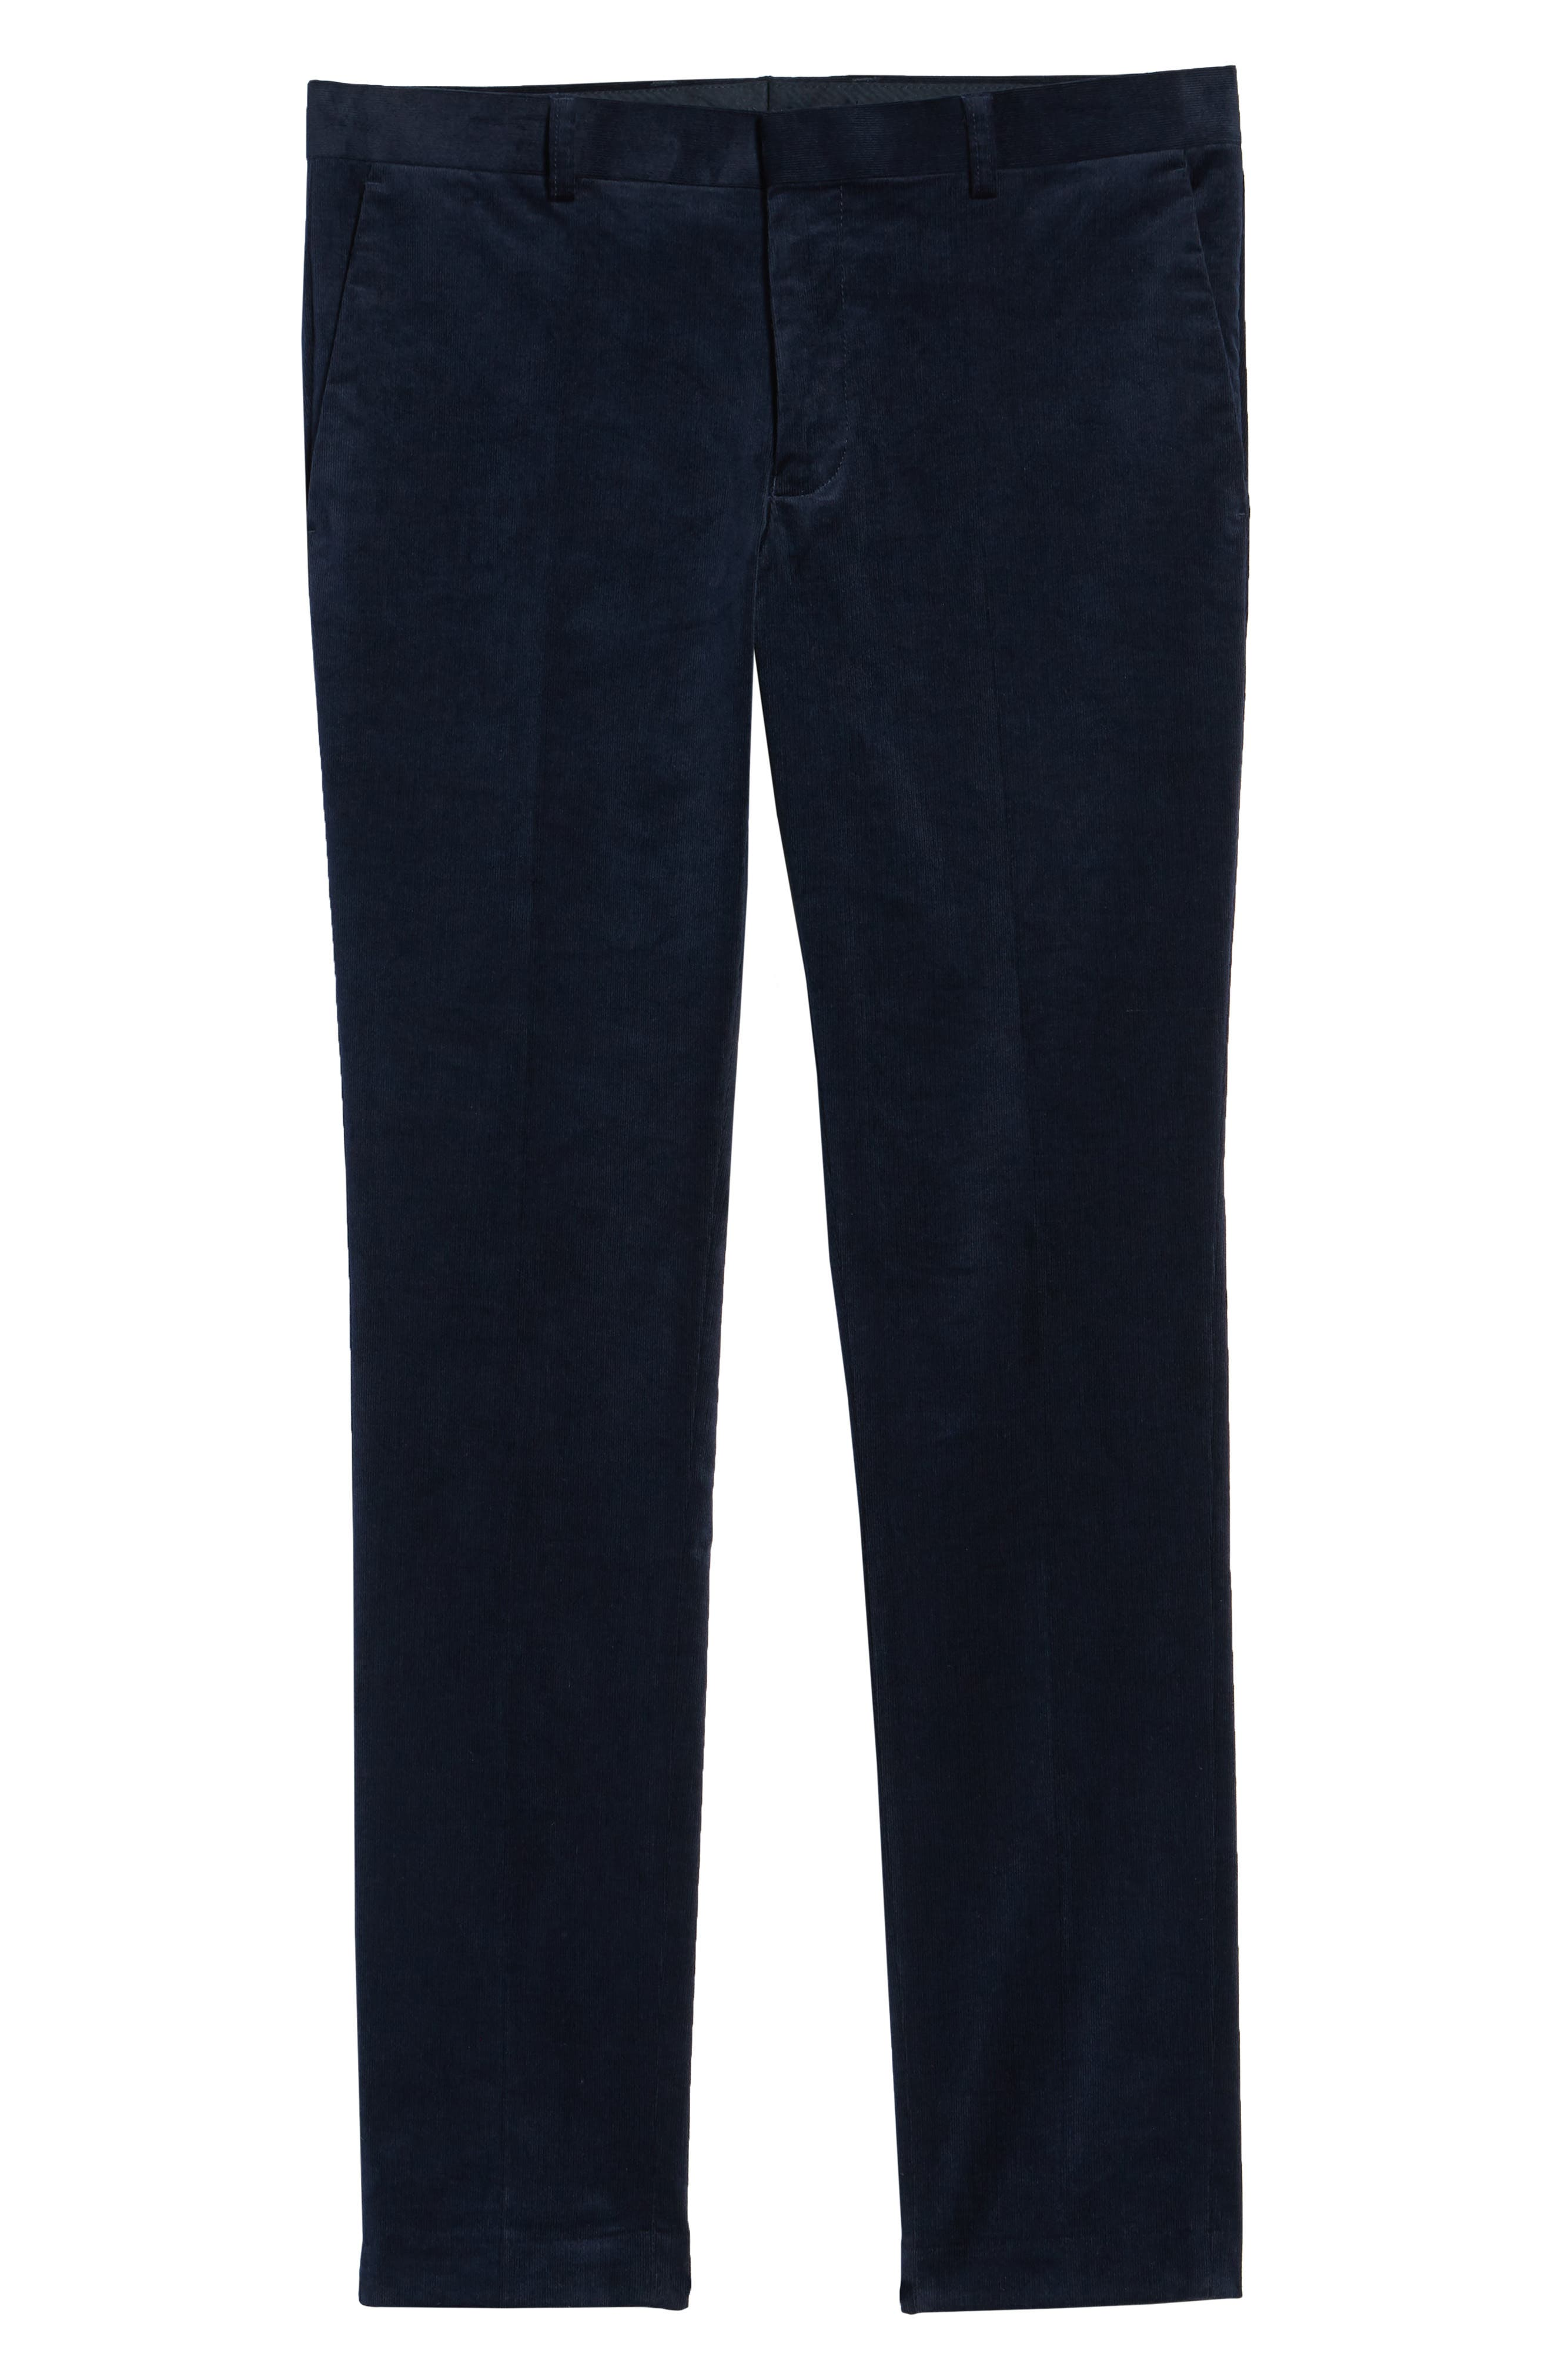 Club Corduroy Suit Pants,                             Alternate thumbnail 6, color,                             411